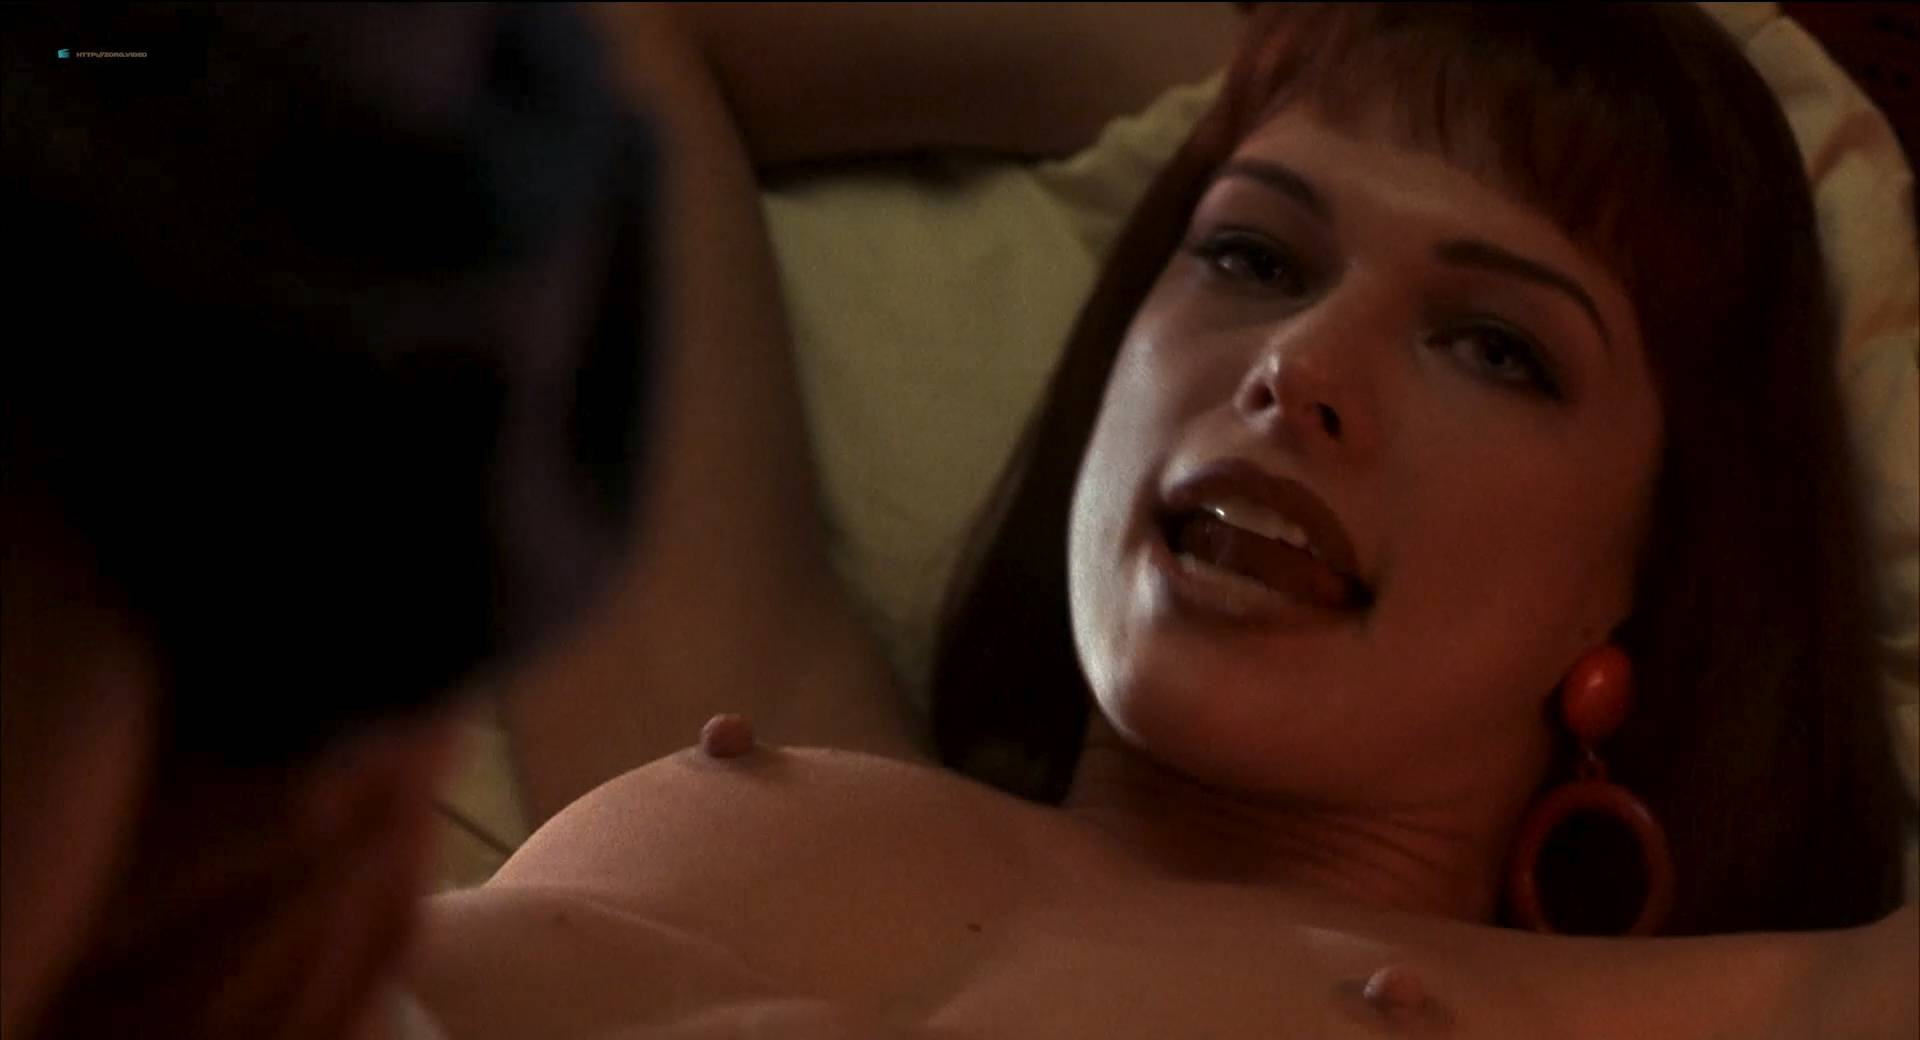 Milla Jovovic nude and sex Rosario Dawson and other's nude too - He Got Game (1998) HD 1080p BluRay (11)